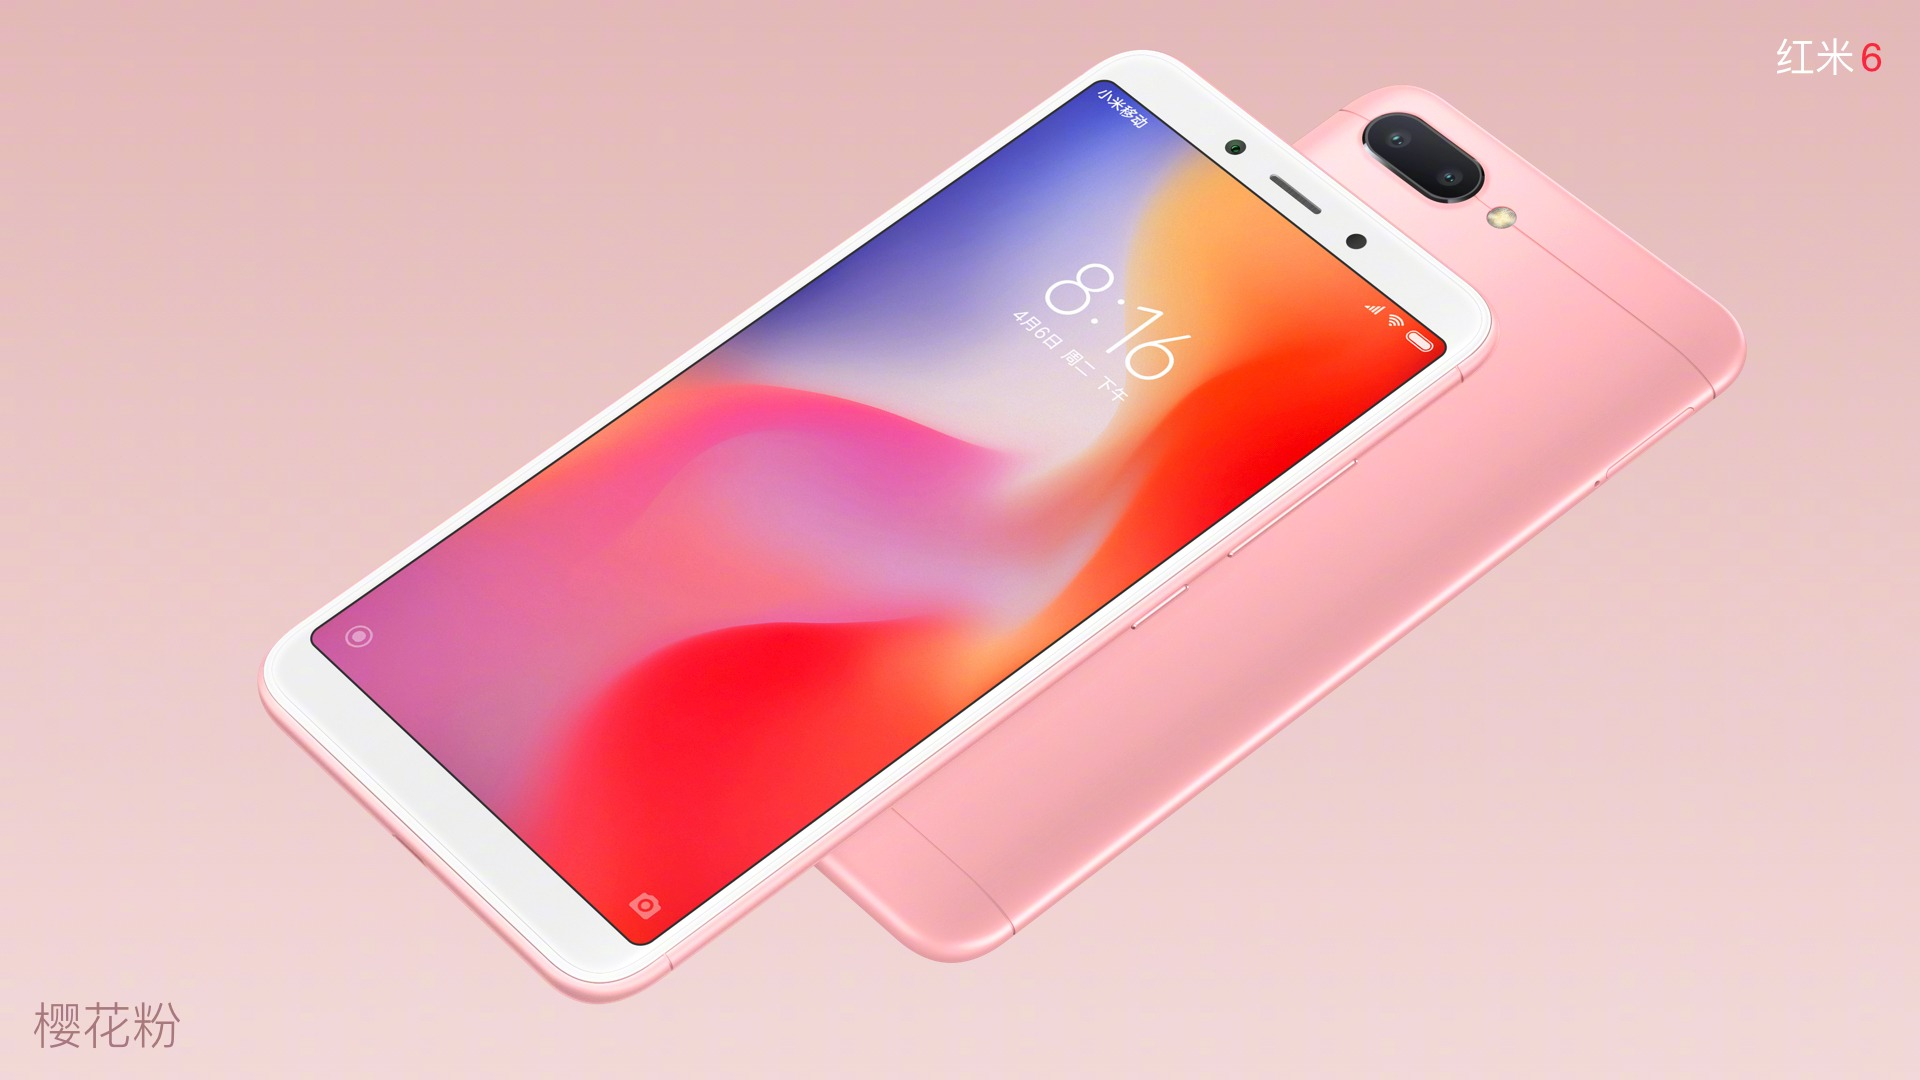 Xiaomi Redmi 6 in Rose Gold